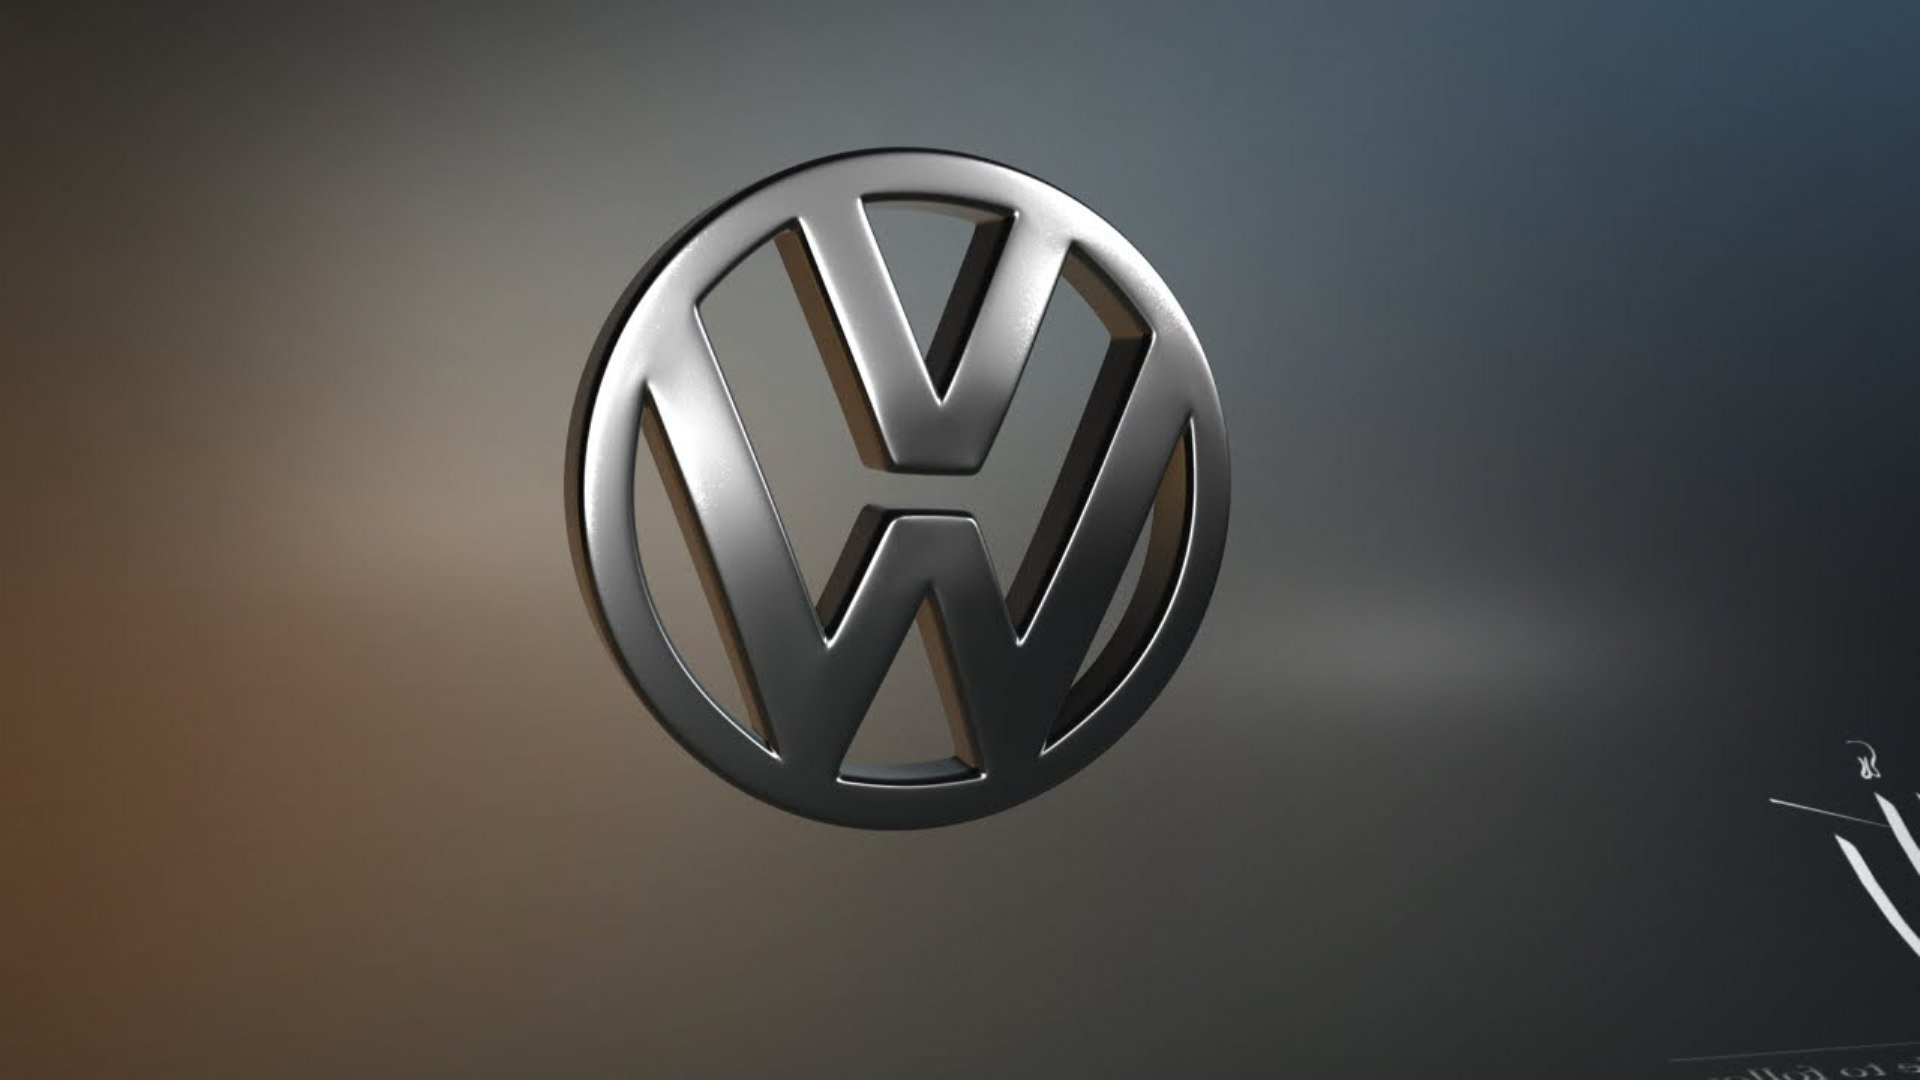 Best Wallpaper Gallery With Pc Wallpaper Volkswagen: Volkswagen Logo Wallpaper